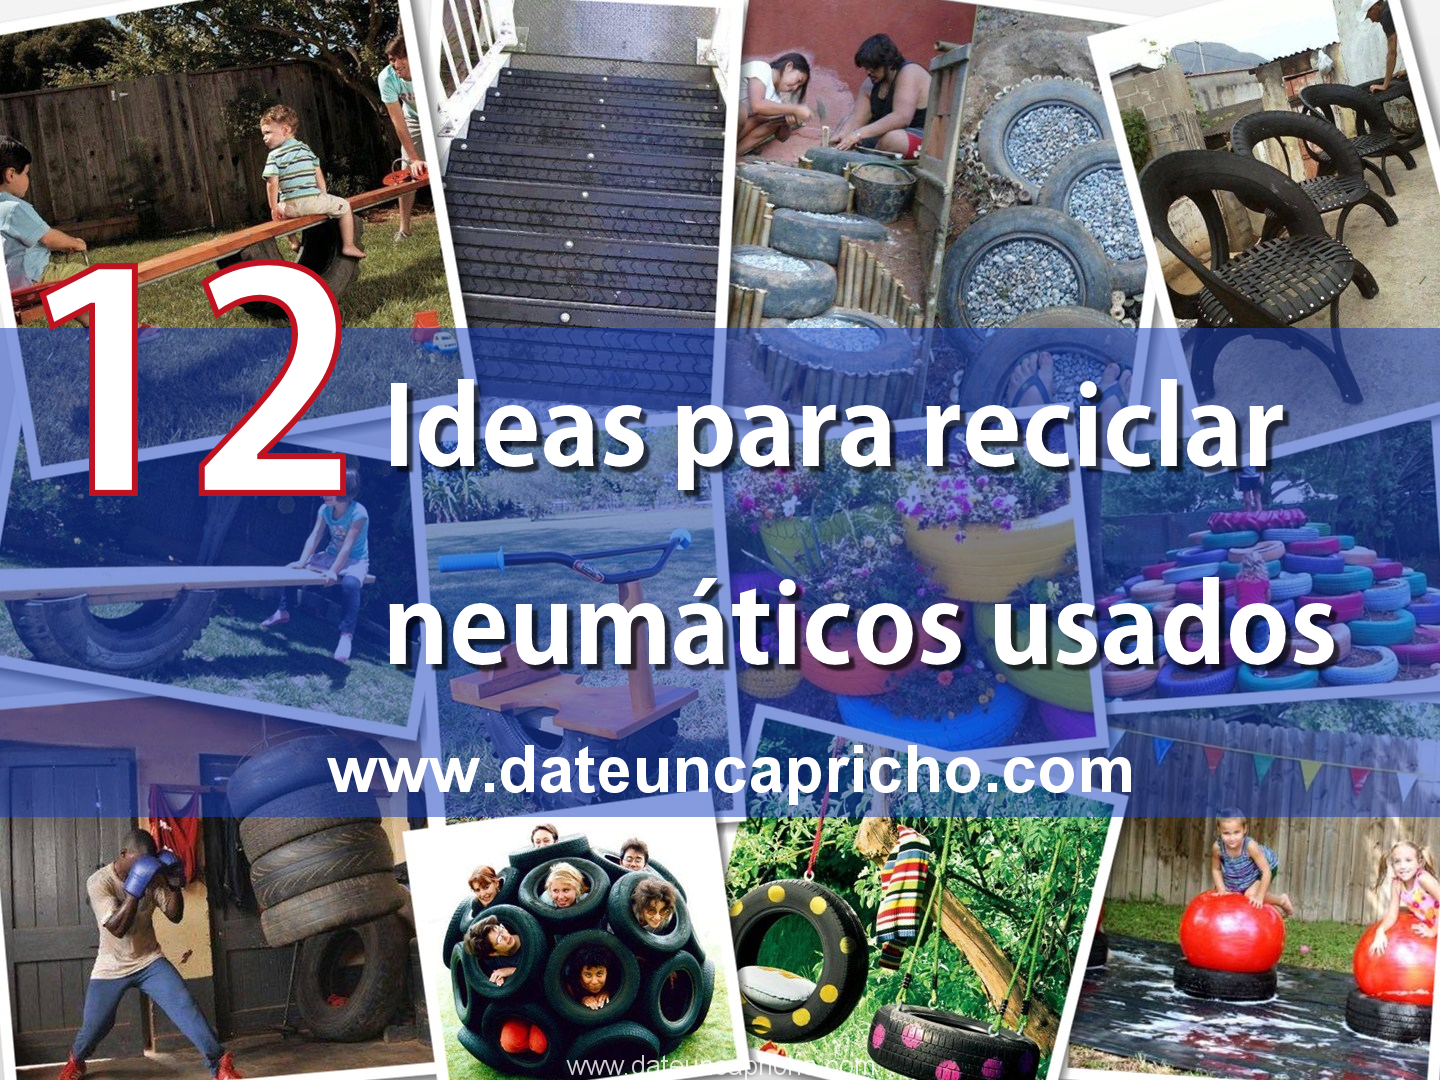 Photo of 12 ideas para reciclar neumáticos usados